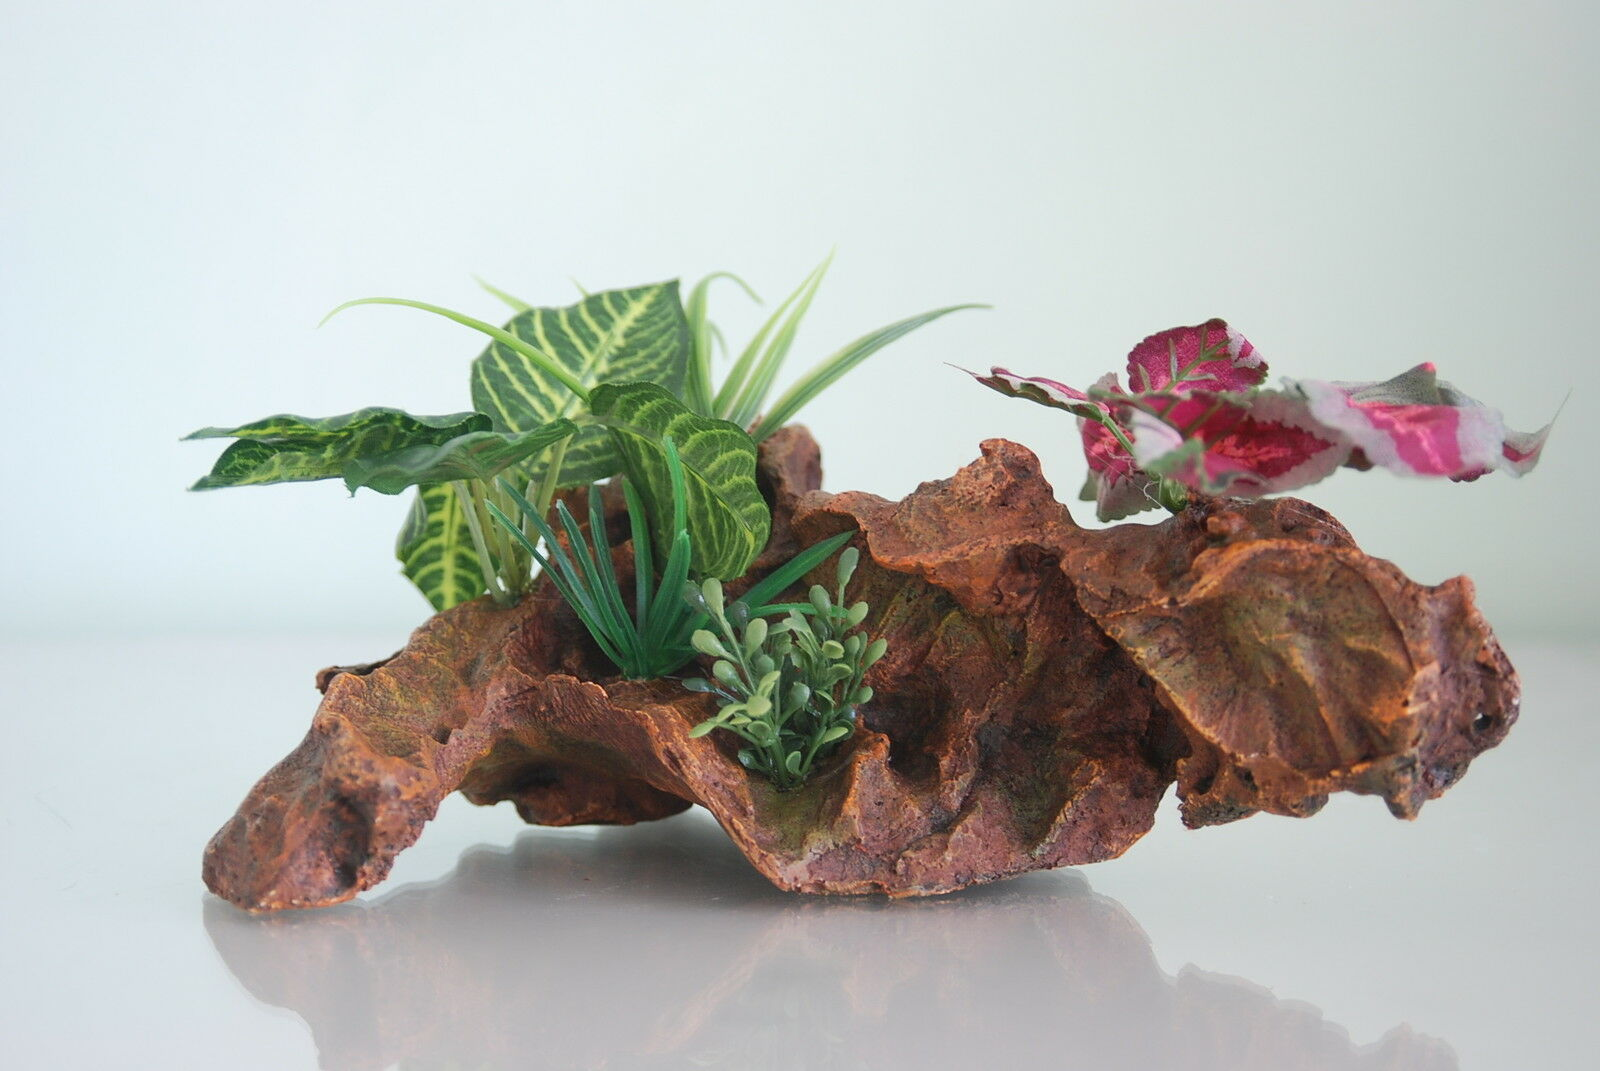 Large Gnarled Wood & Plants Decoration For  All Aquariums 20 cms